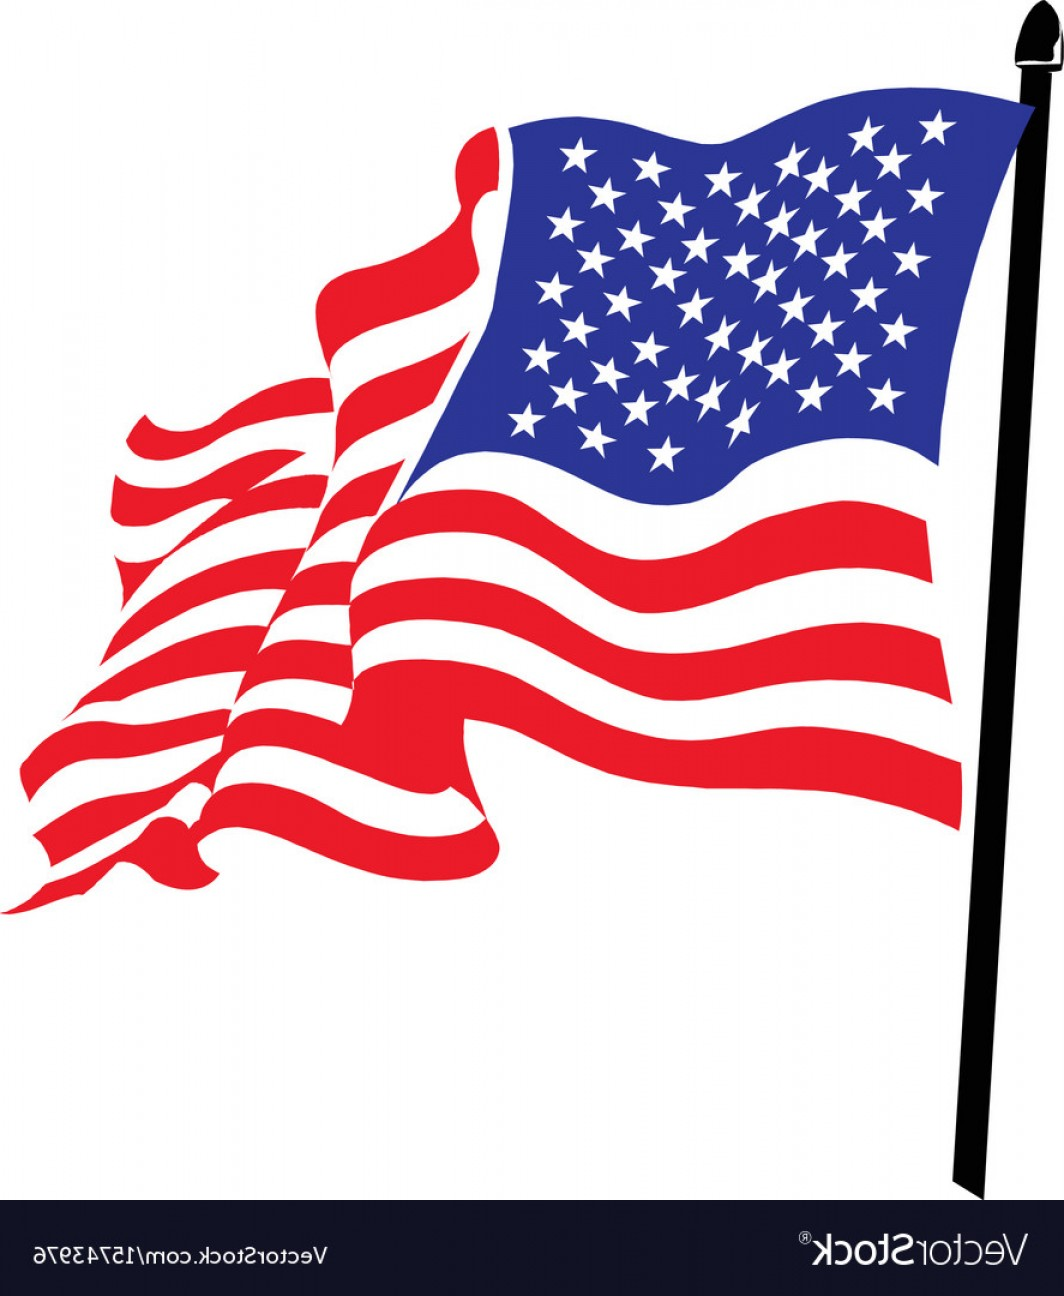 1064x1296 Results For Waving American Flag Vector